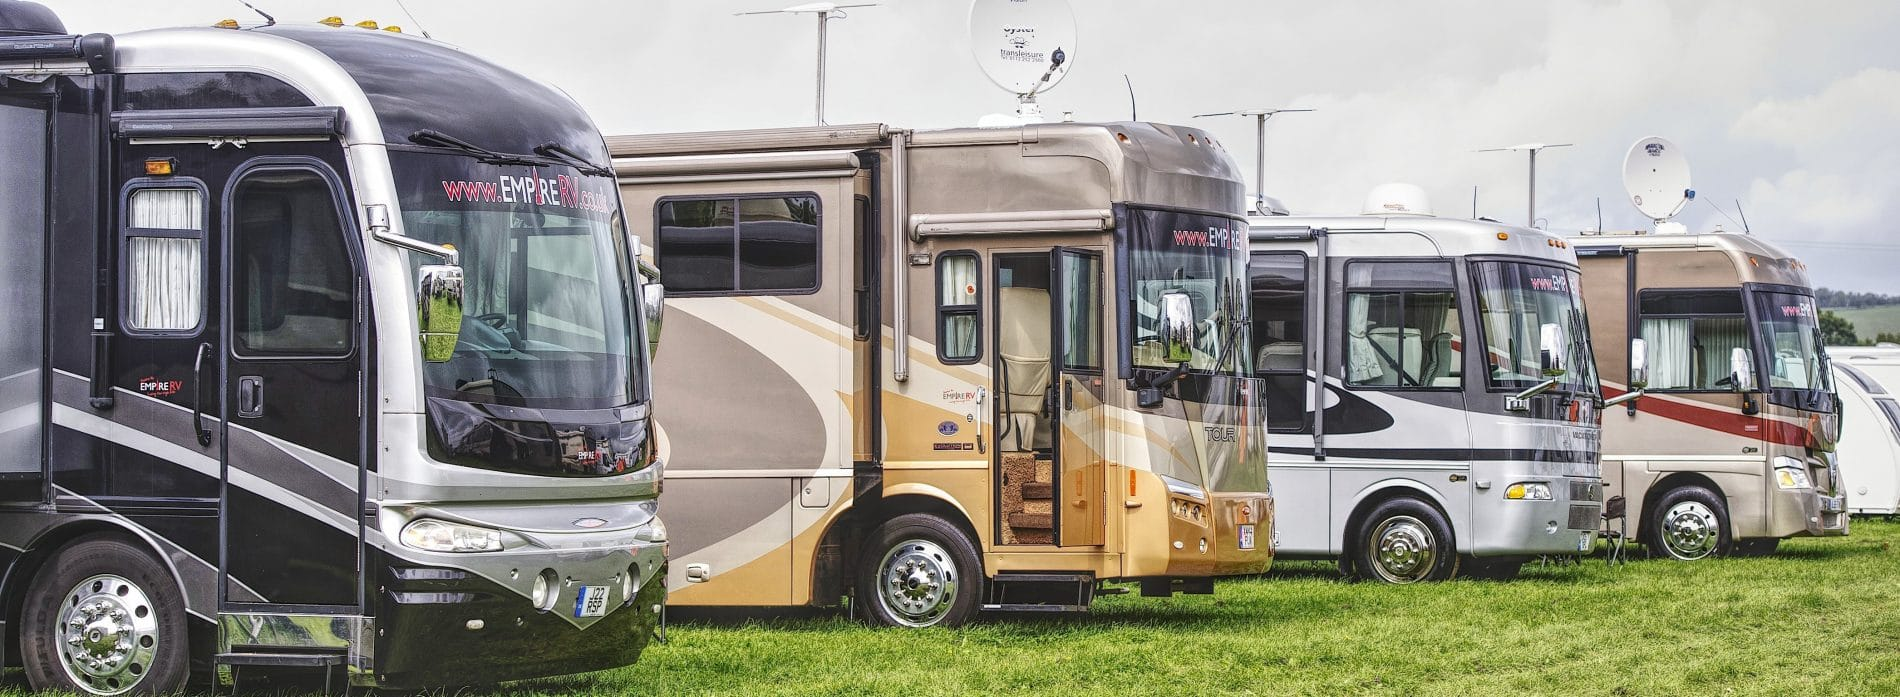 RV and American Motorhomes for sale and hire - (c) Empire RV